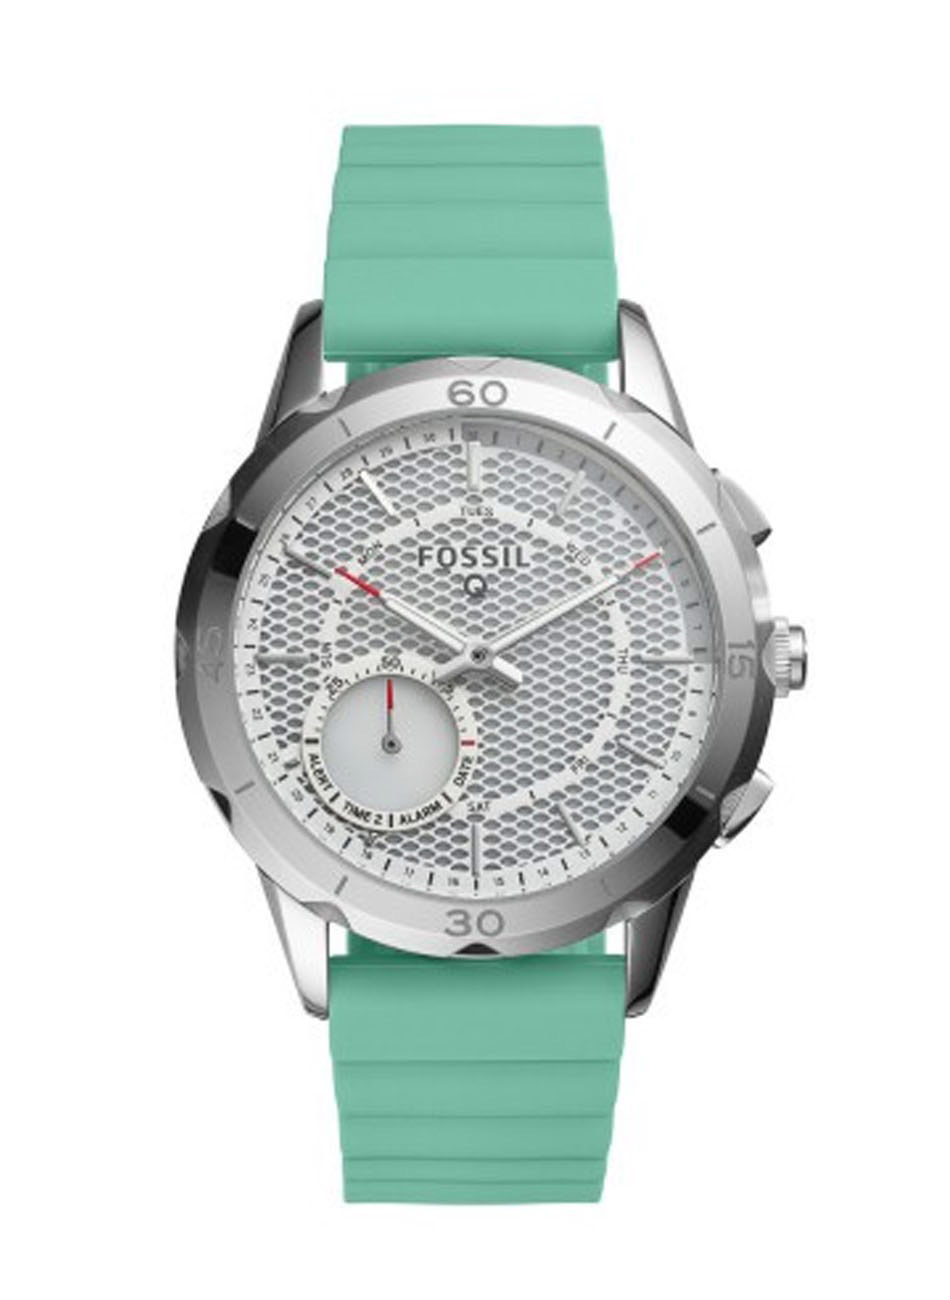 Fossil Q Modern Persuit Hybrid Watch FTW1134